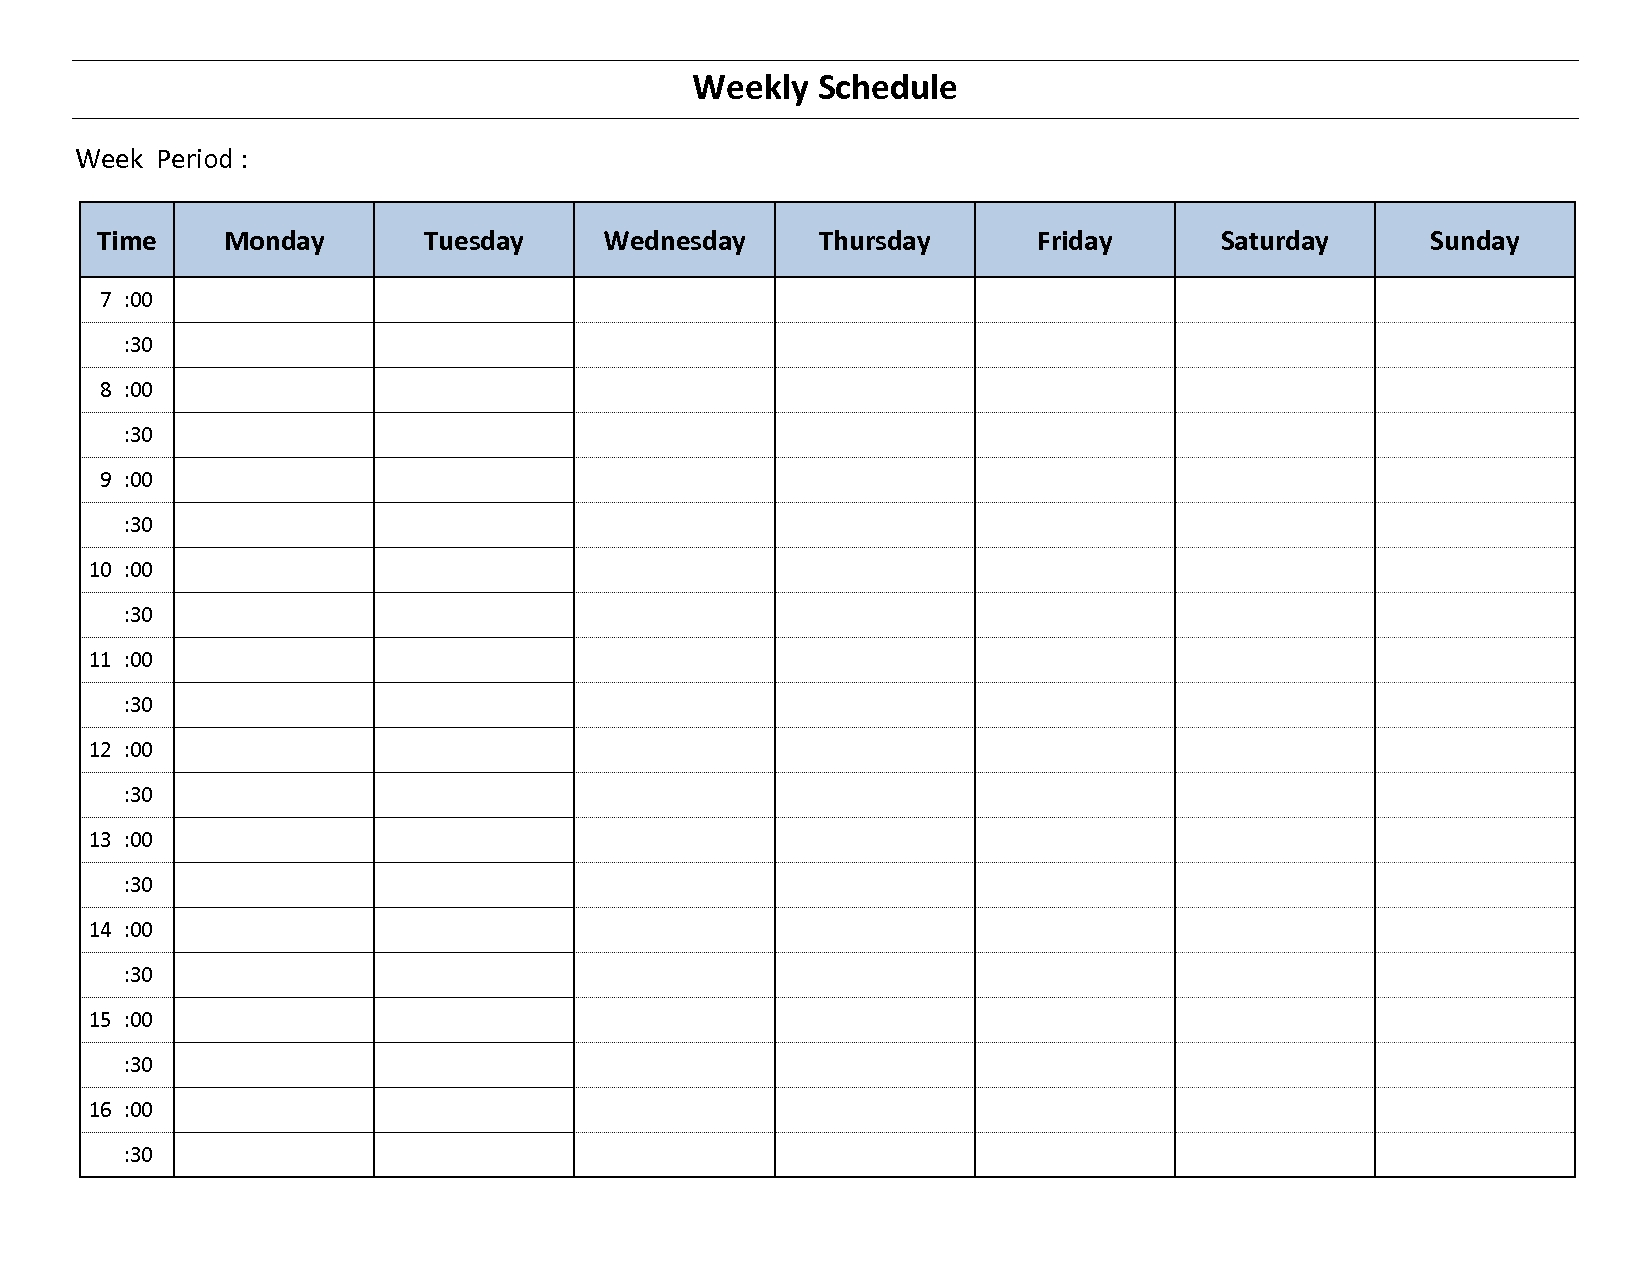 Free Weekly Schedule Templates For Word Monday Through Day Template with regard to Printable Weekly Schedule Monday Thru Friday